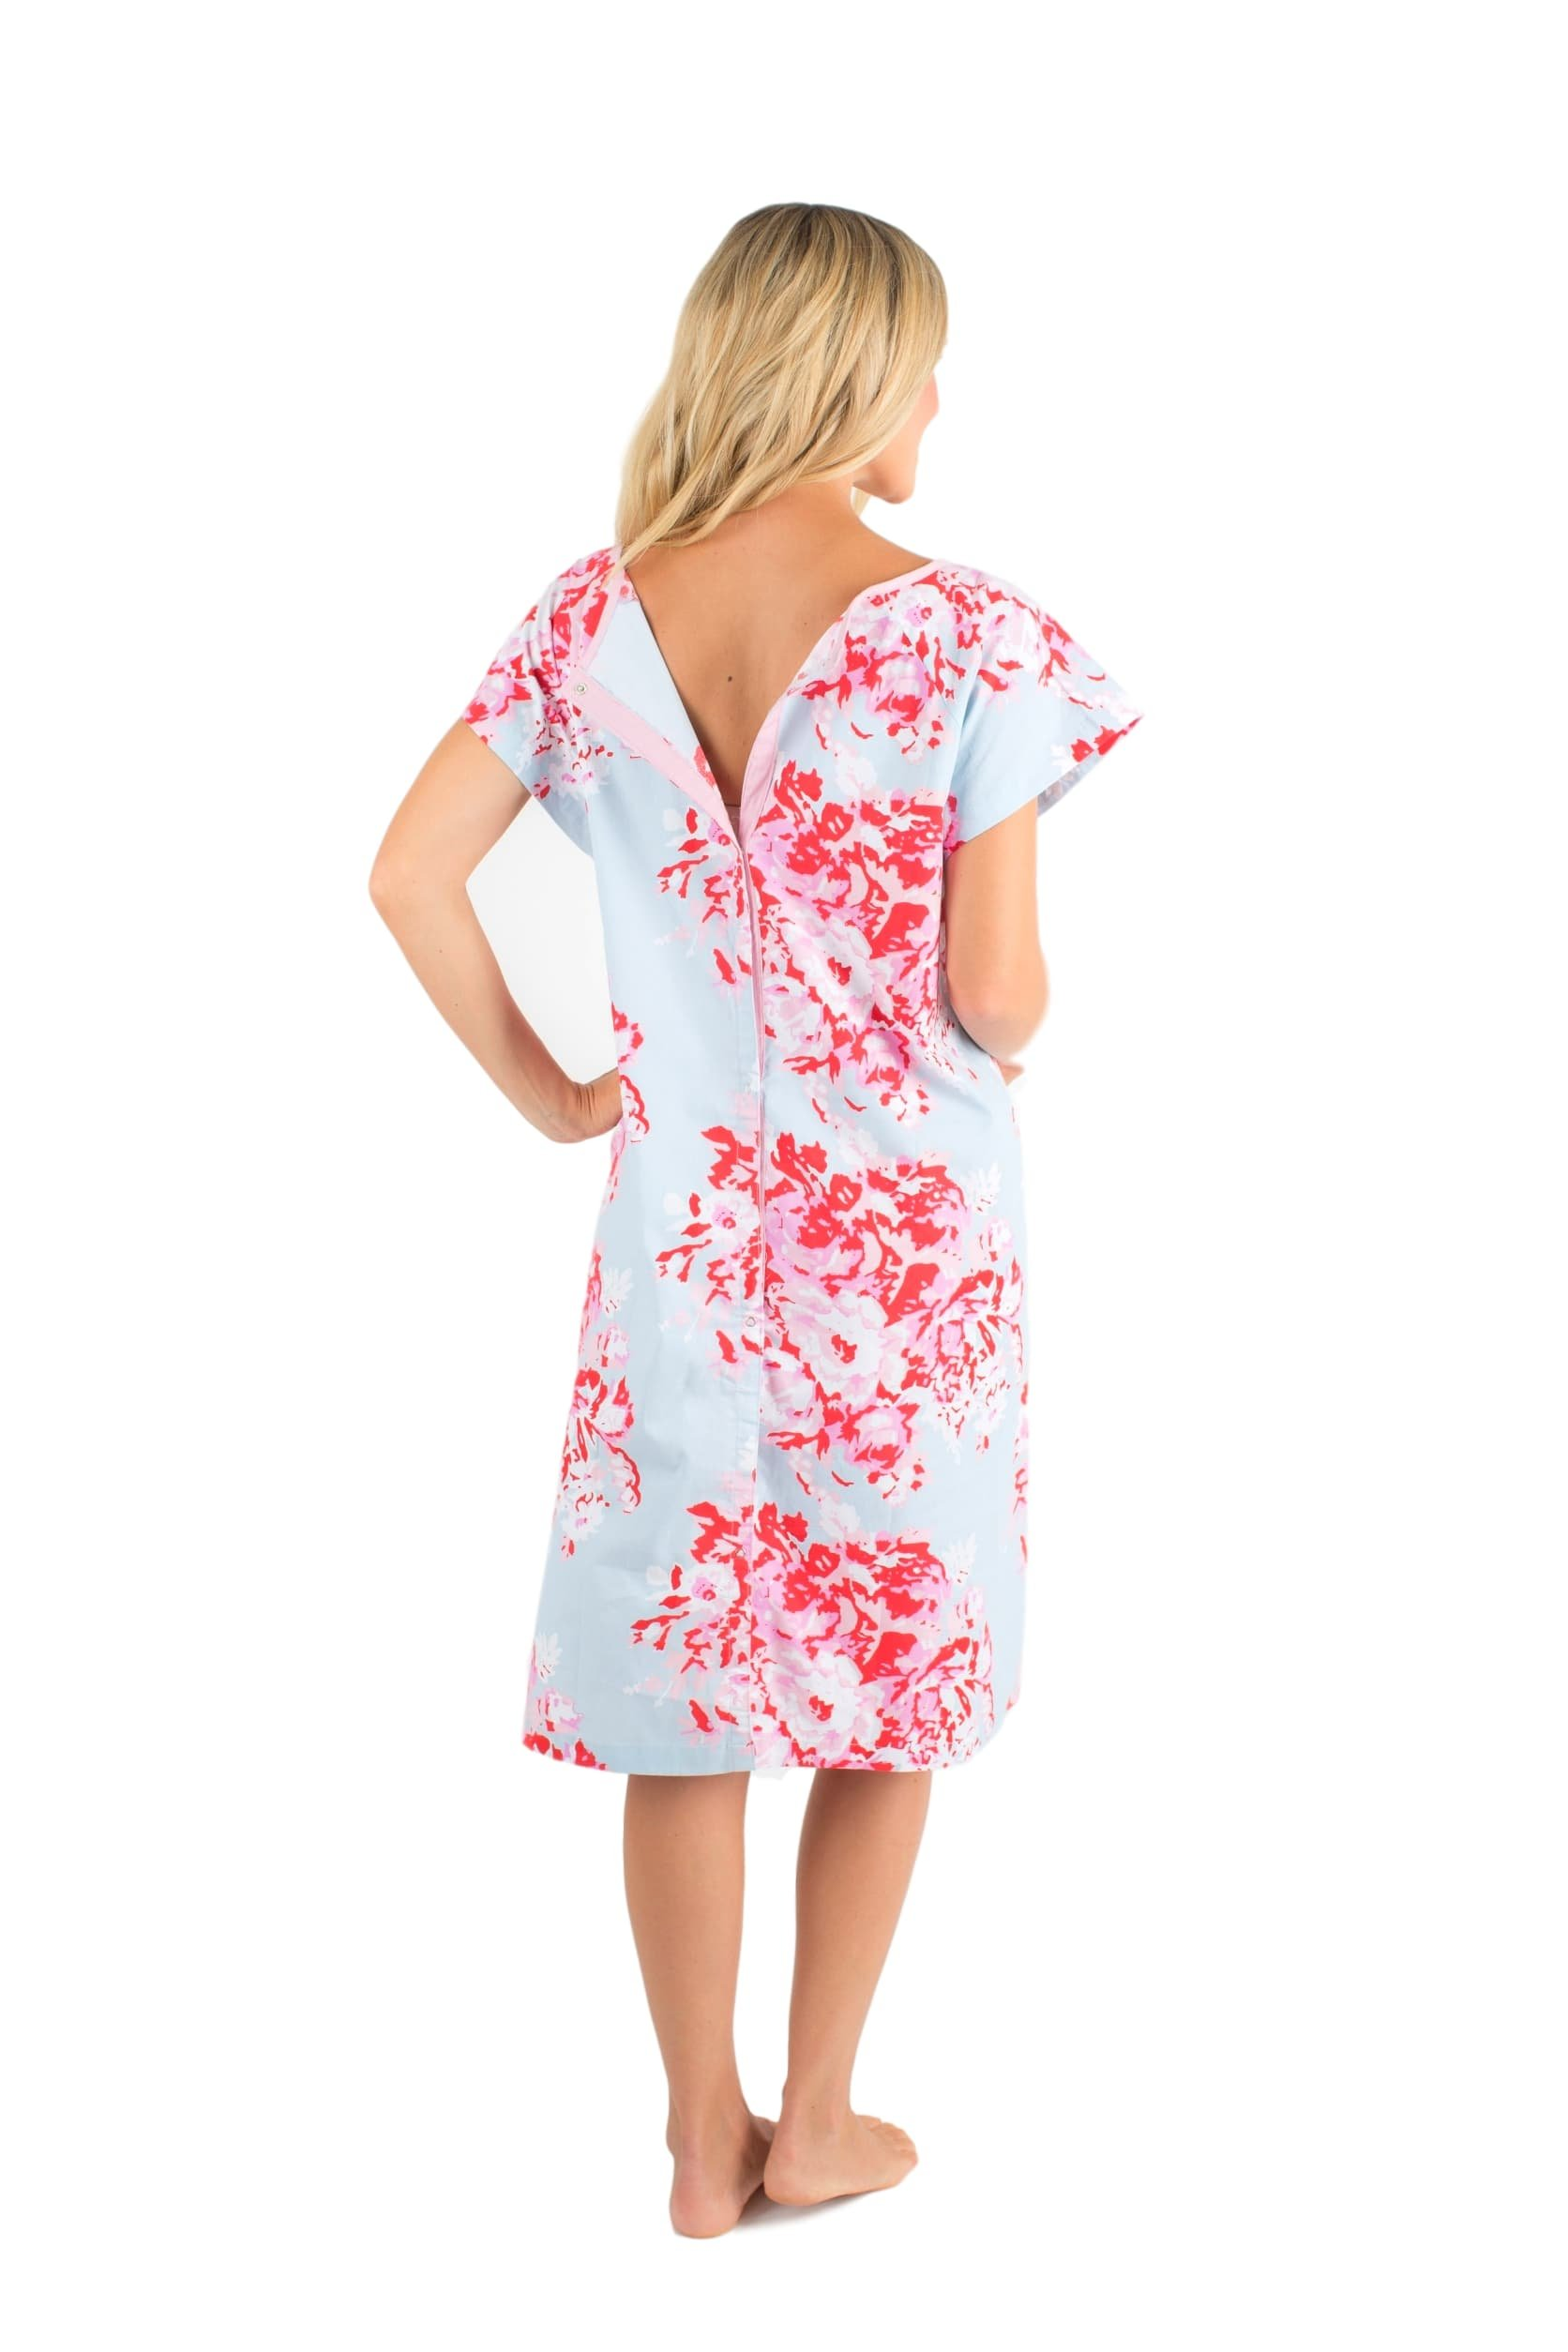 0bf56ca6f5813 Baby Be Mine Gownies - Labor & Delivery Maternity Hospital Gown Maternity,  Hospital Bag Must Have, Best (L/XL pre Pregnancy 10-16, Mae/Floral) -  43236-25264 ...